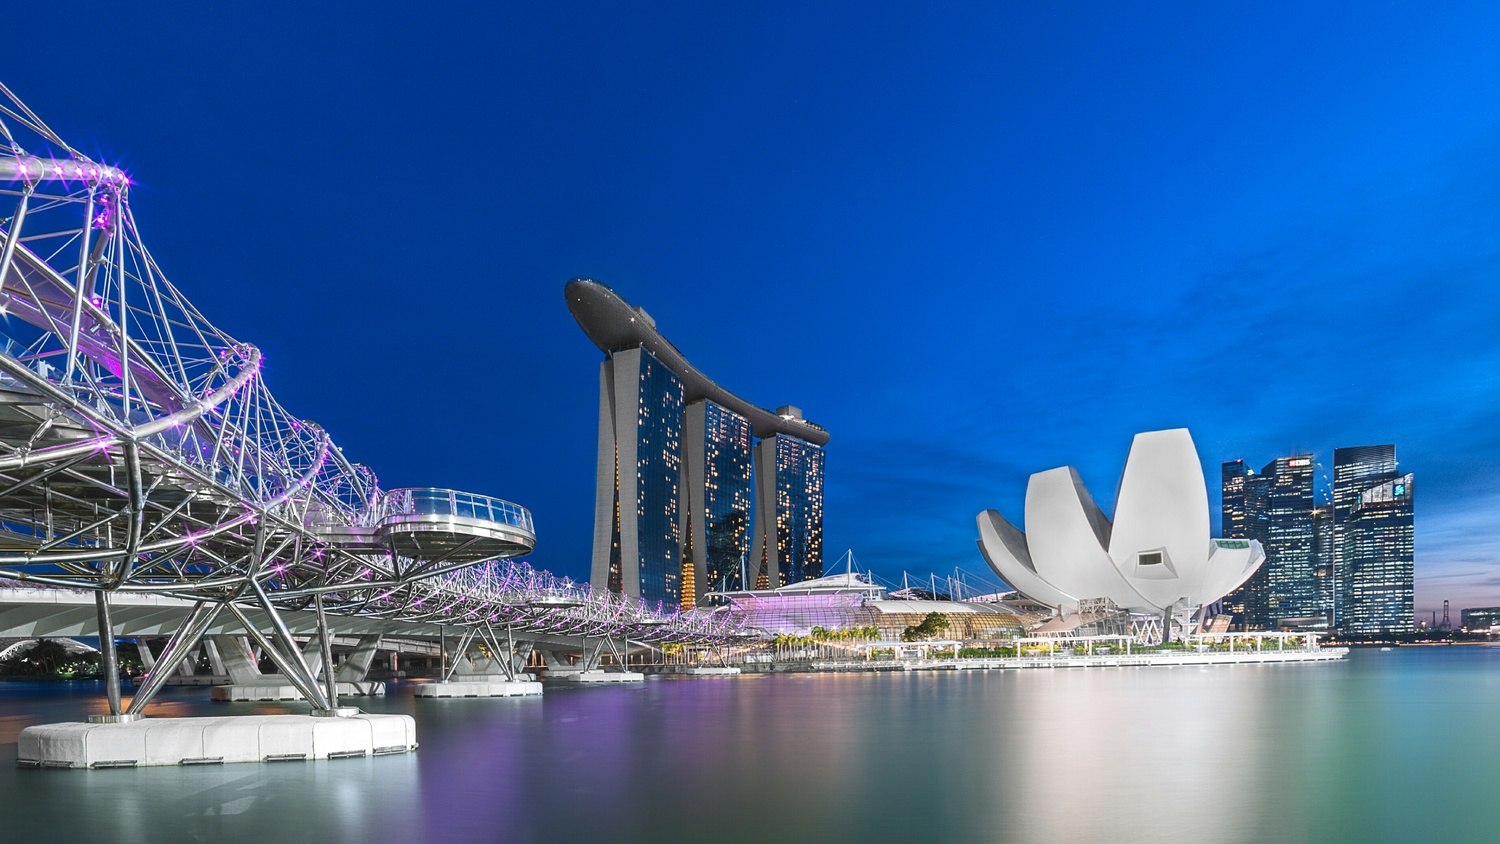 Marina Bay Sands PM blue hour by jack peh